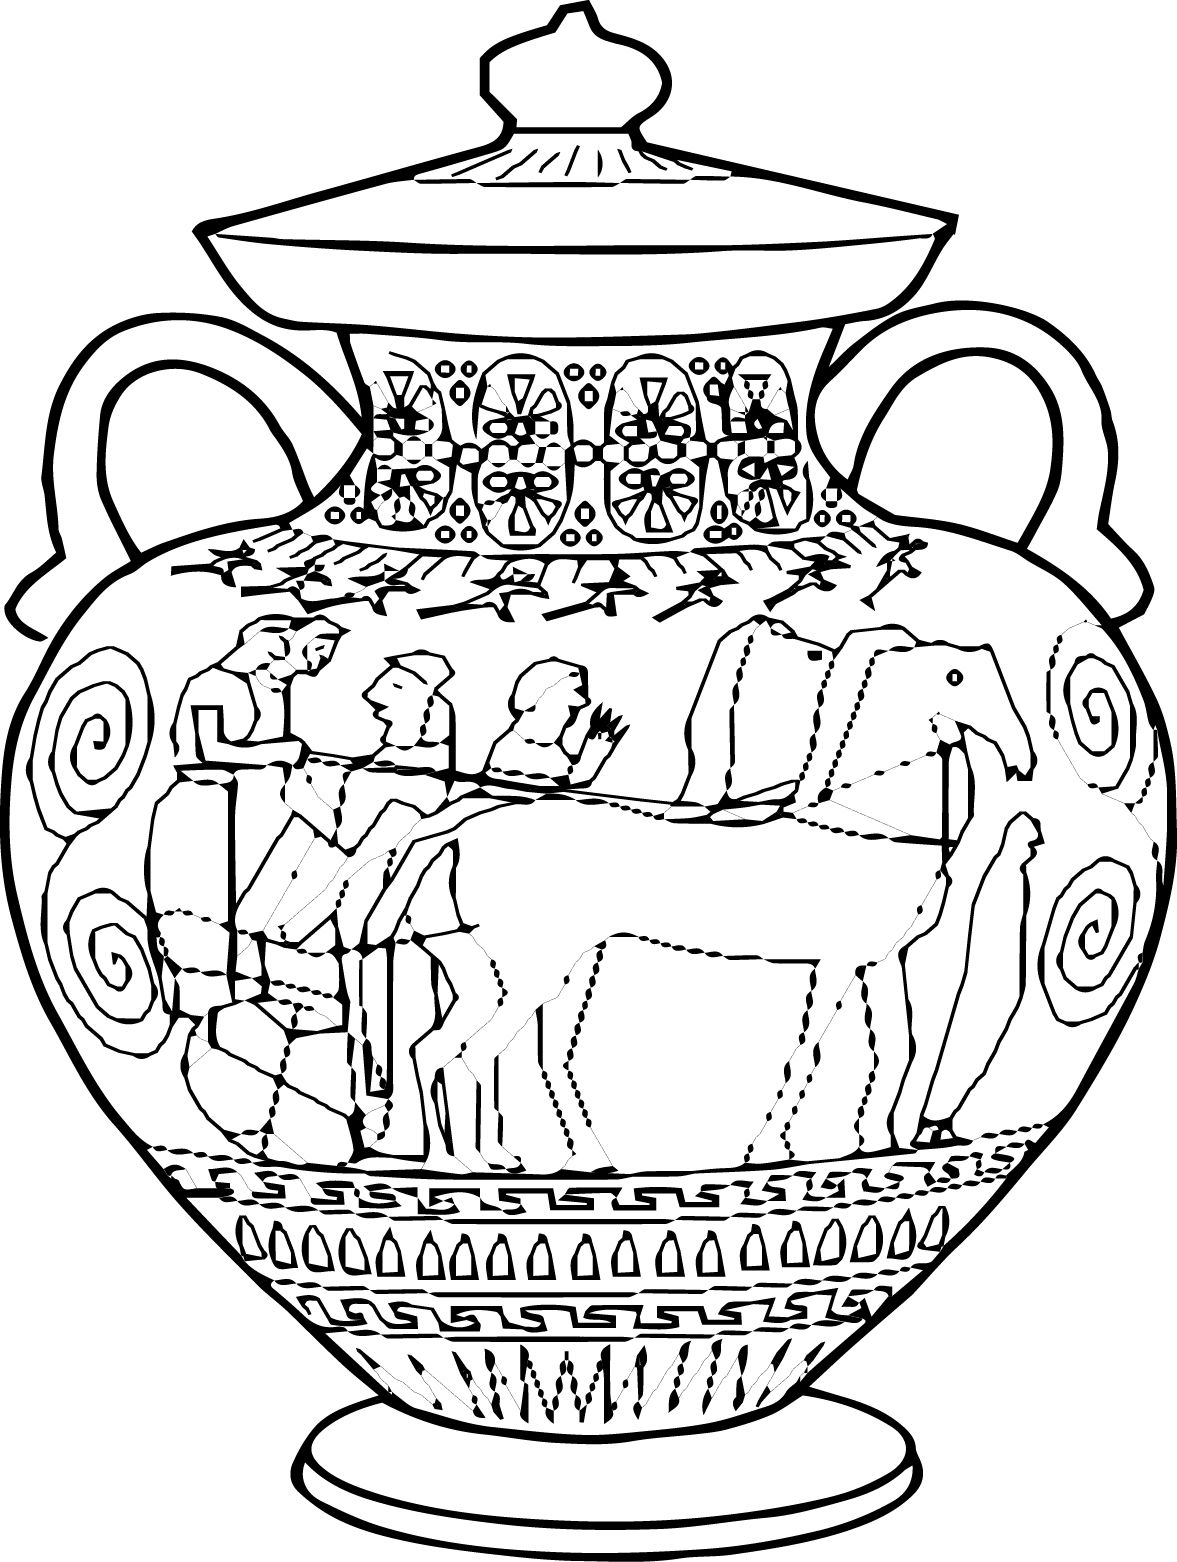 amphora ancient greece coloring pagesjpg 11771562